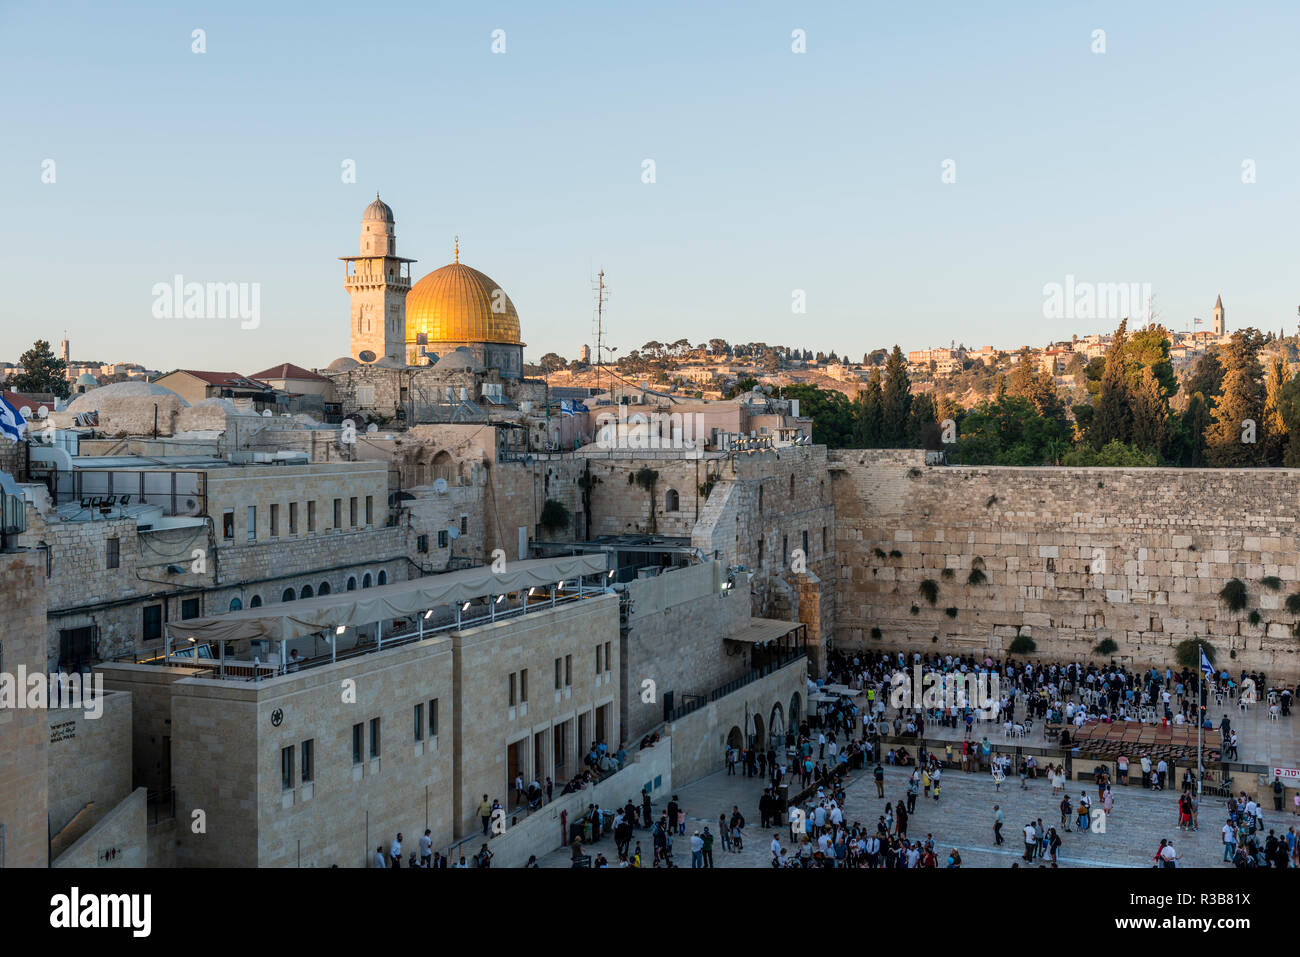 Dome of the Rock, also Qubbat As-sachra, Kipat Hasela, with Wailing Wall, Old Town, Jerusalem, Israel - Stock Image